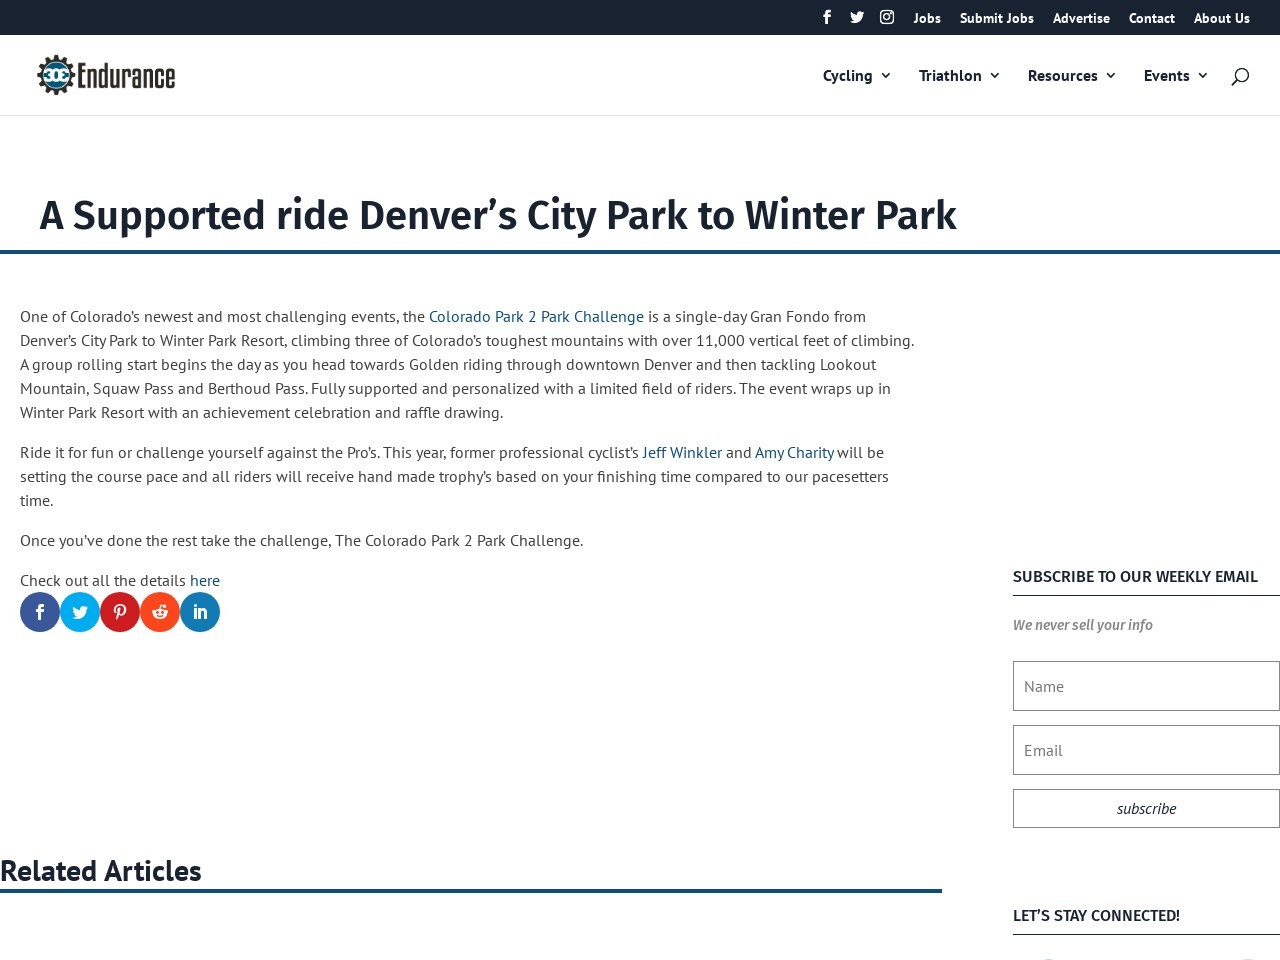 A Supported ride Denver's City Park to Winter Park